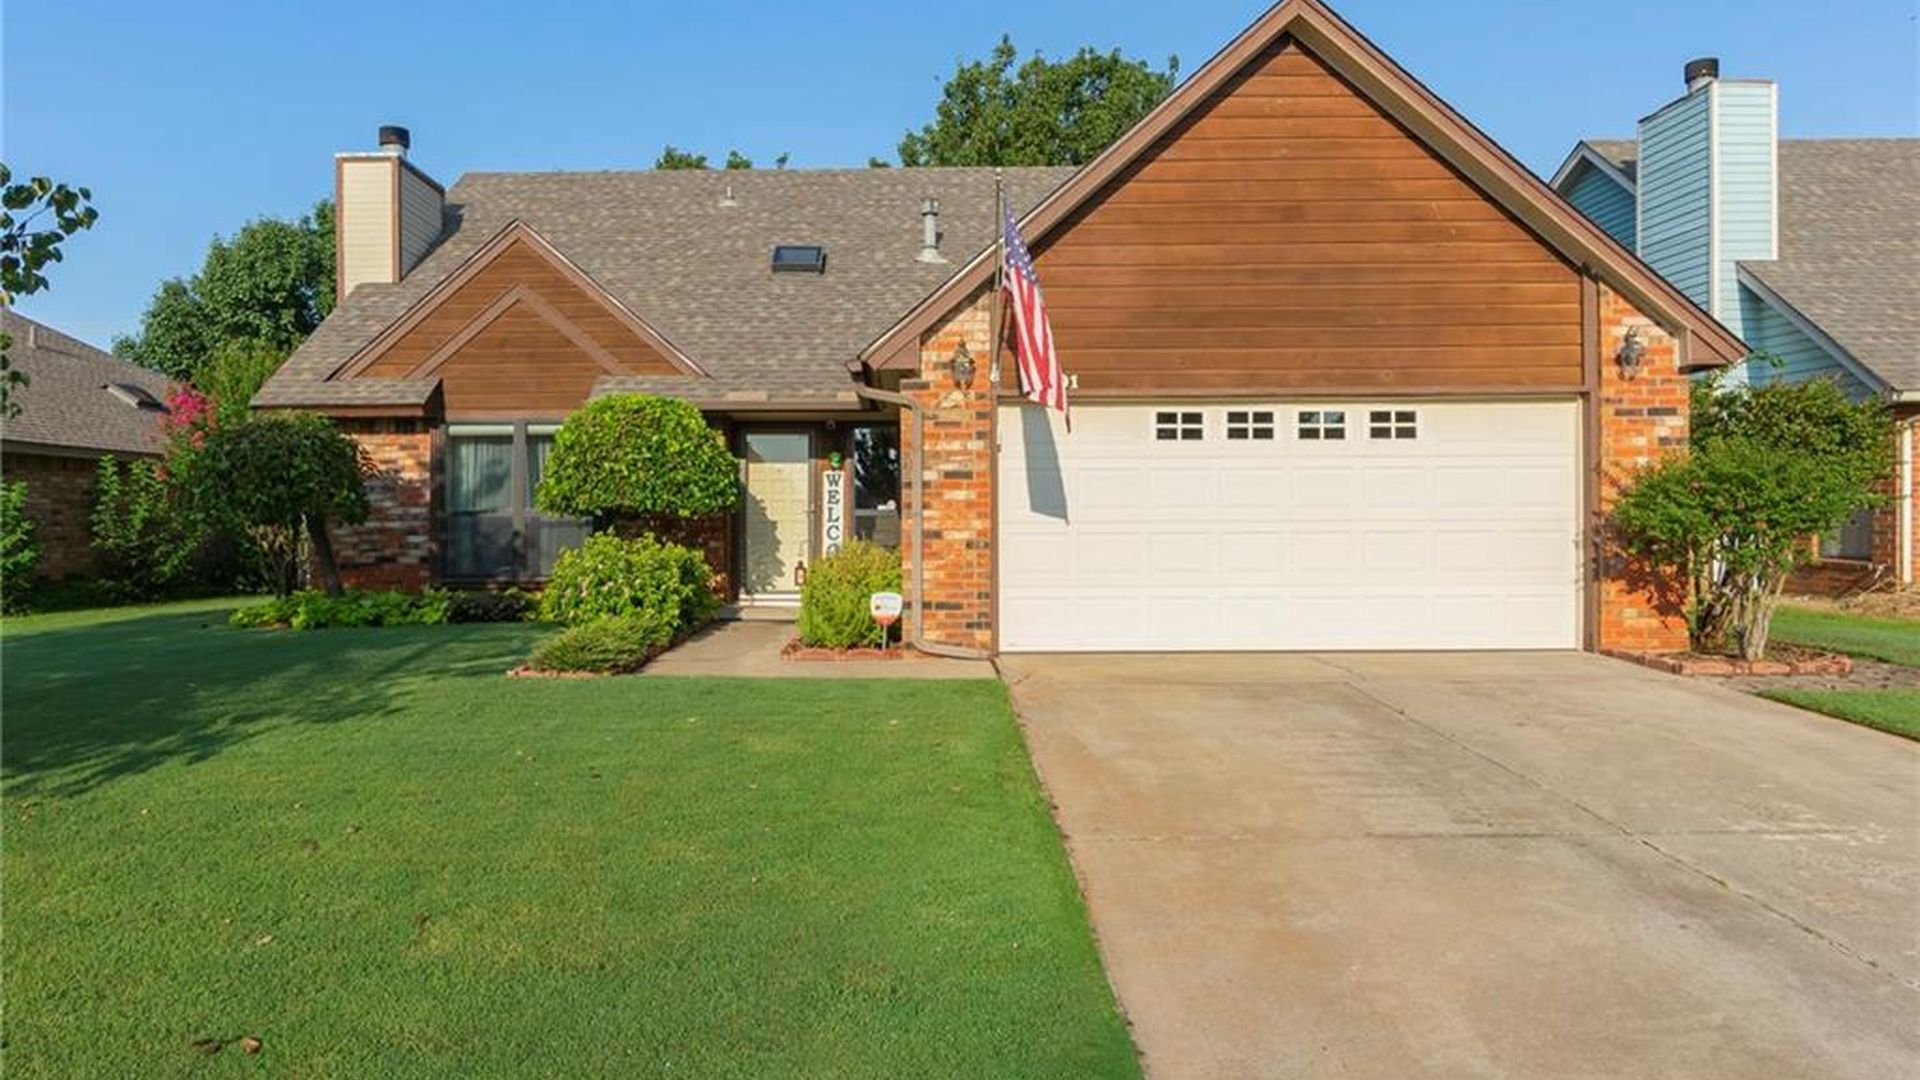 Moore Real Estate - Moore OK Homes For Sale | Zillow